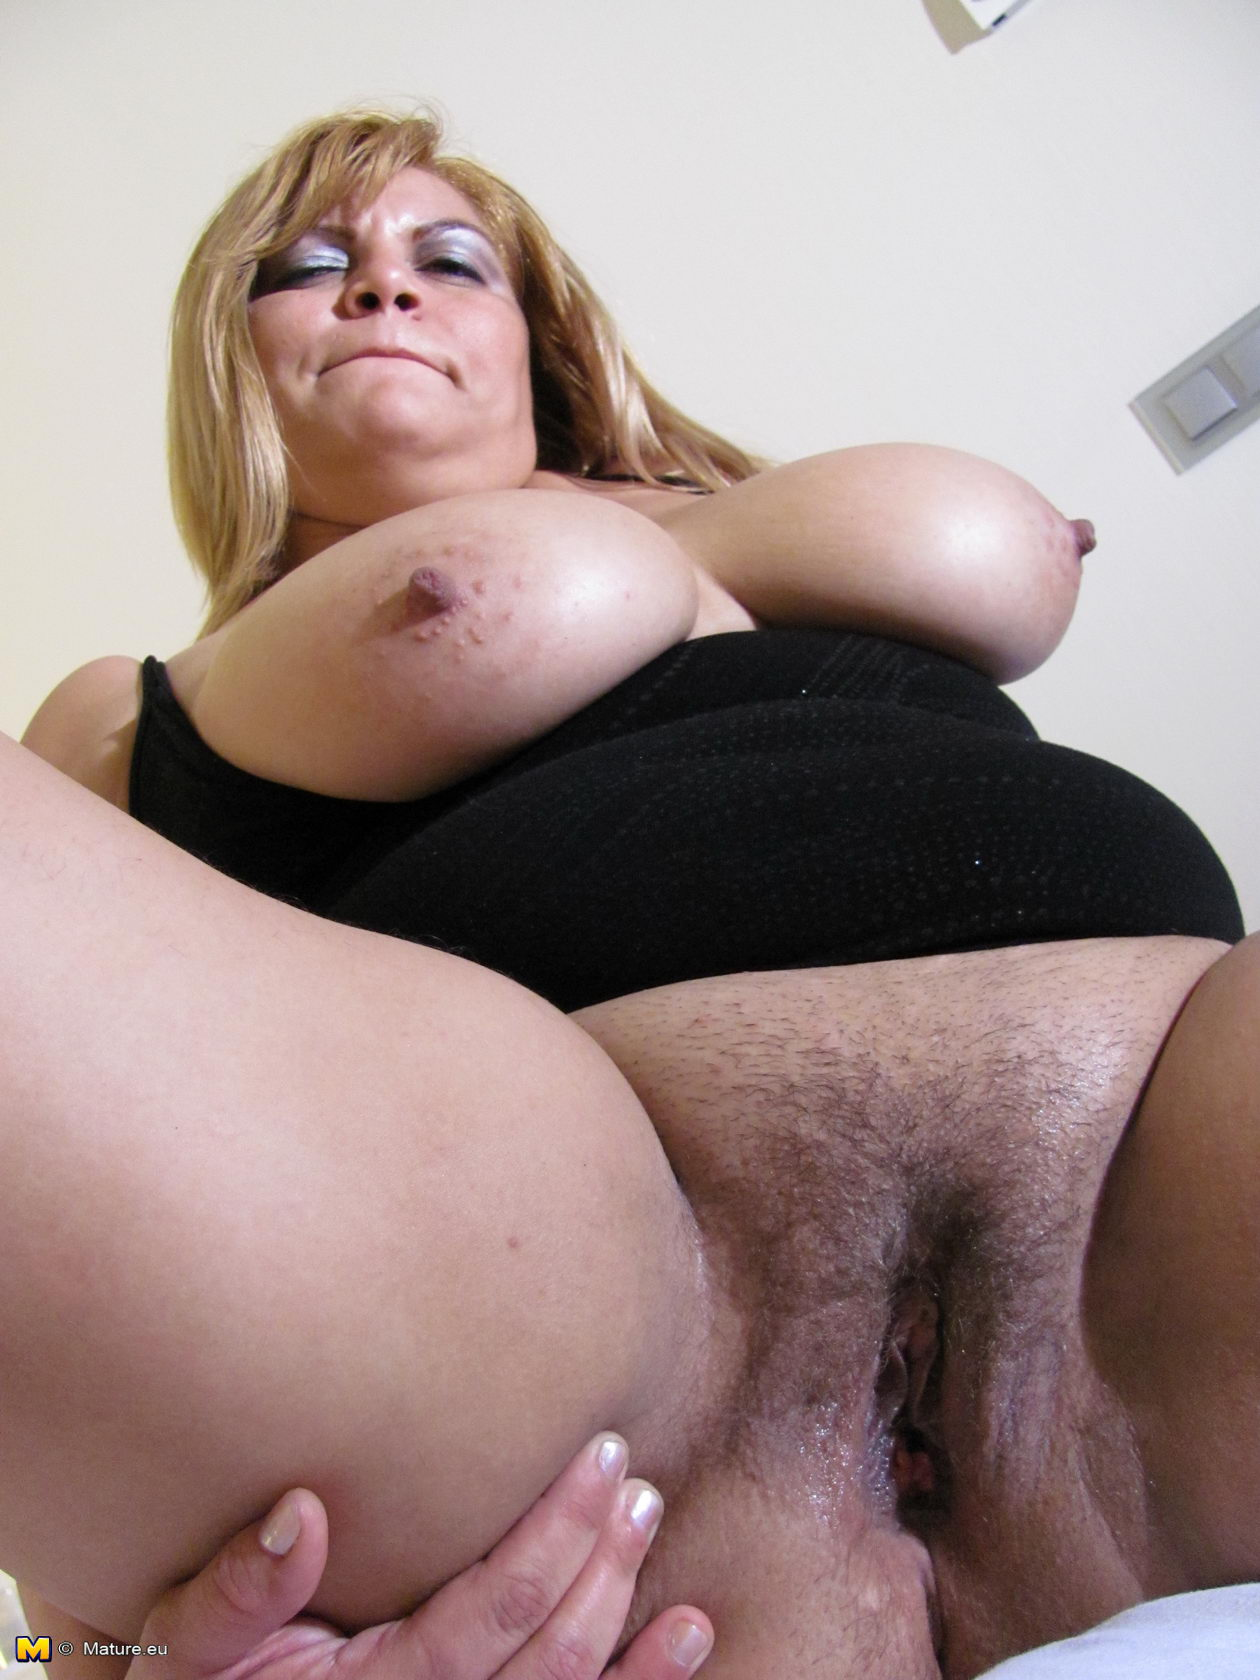 bbw big fat grandmother mature old slut pics gallery